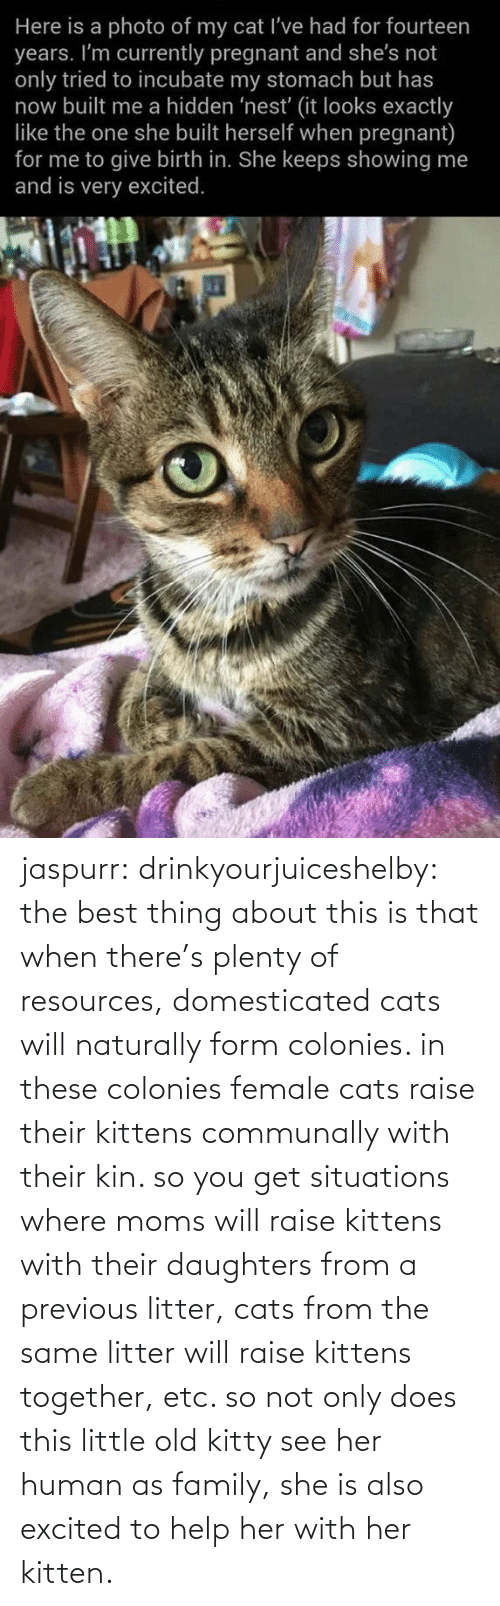 situations: jaspurr:  drinkyourjuiceshelby:    the best thing about this is that when there's plenty of resources, domesticated cats will naturally form colonies. in these colonies female cats raise their kittens communally with their kin. so you get situations where moms will raise kittens with their daughters from a previous litter, cats from the same litter will raise kittens together, etc. so not only does this little old kitty see her human as family, she is also excited to help her with her kitten.